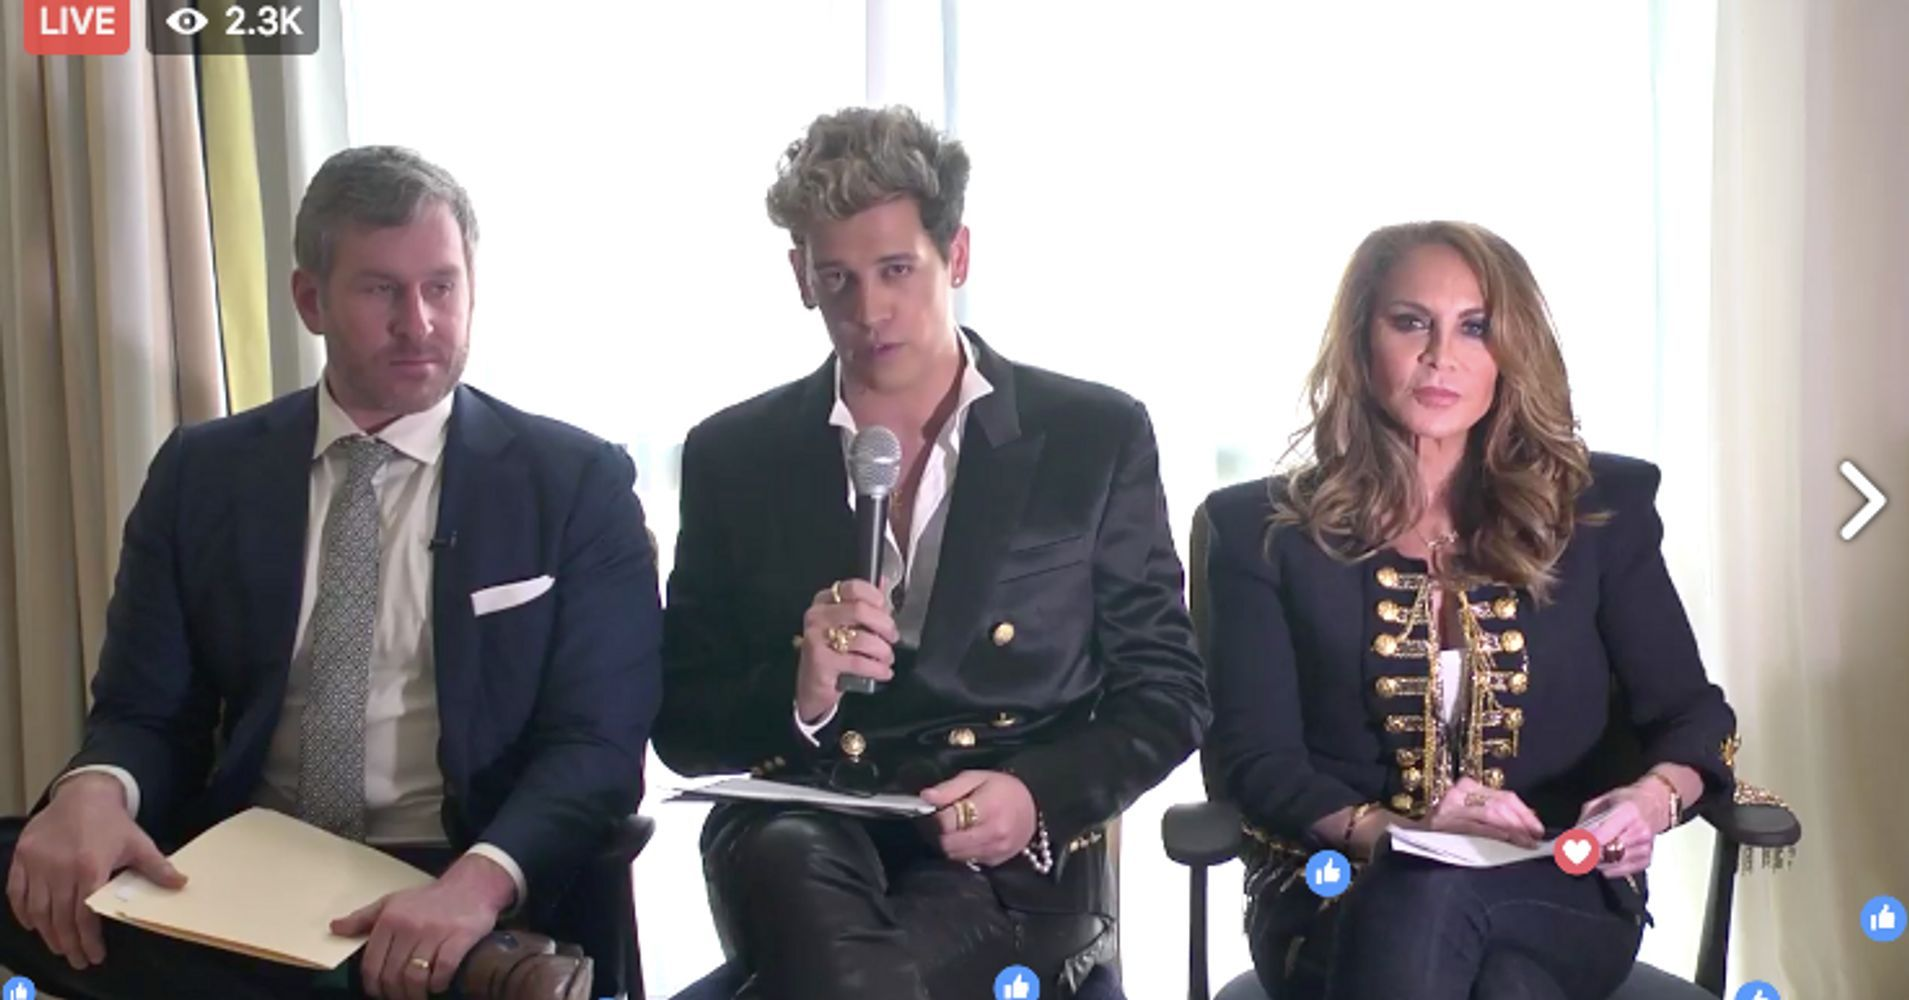 In Sad, Sad Press Conference, Milo Says 'Free Speech Week' Is Now Just One Measly Rally - HuffPost